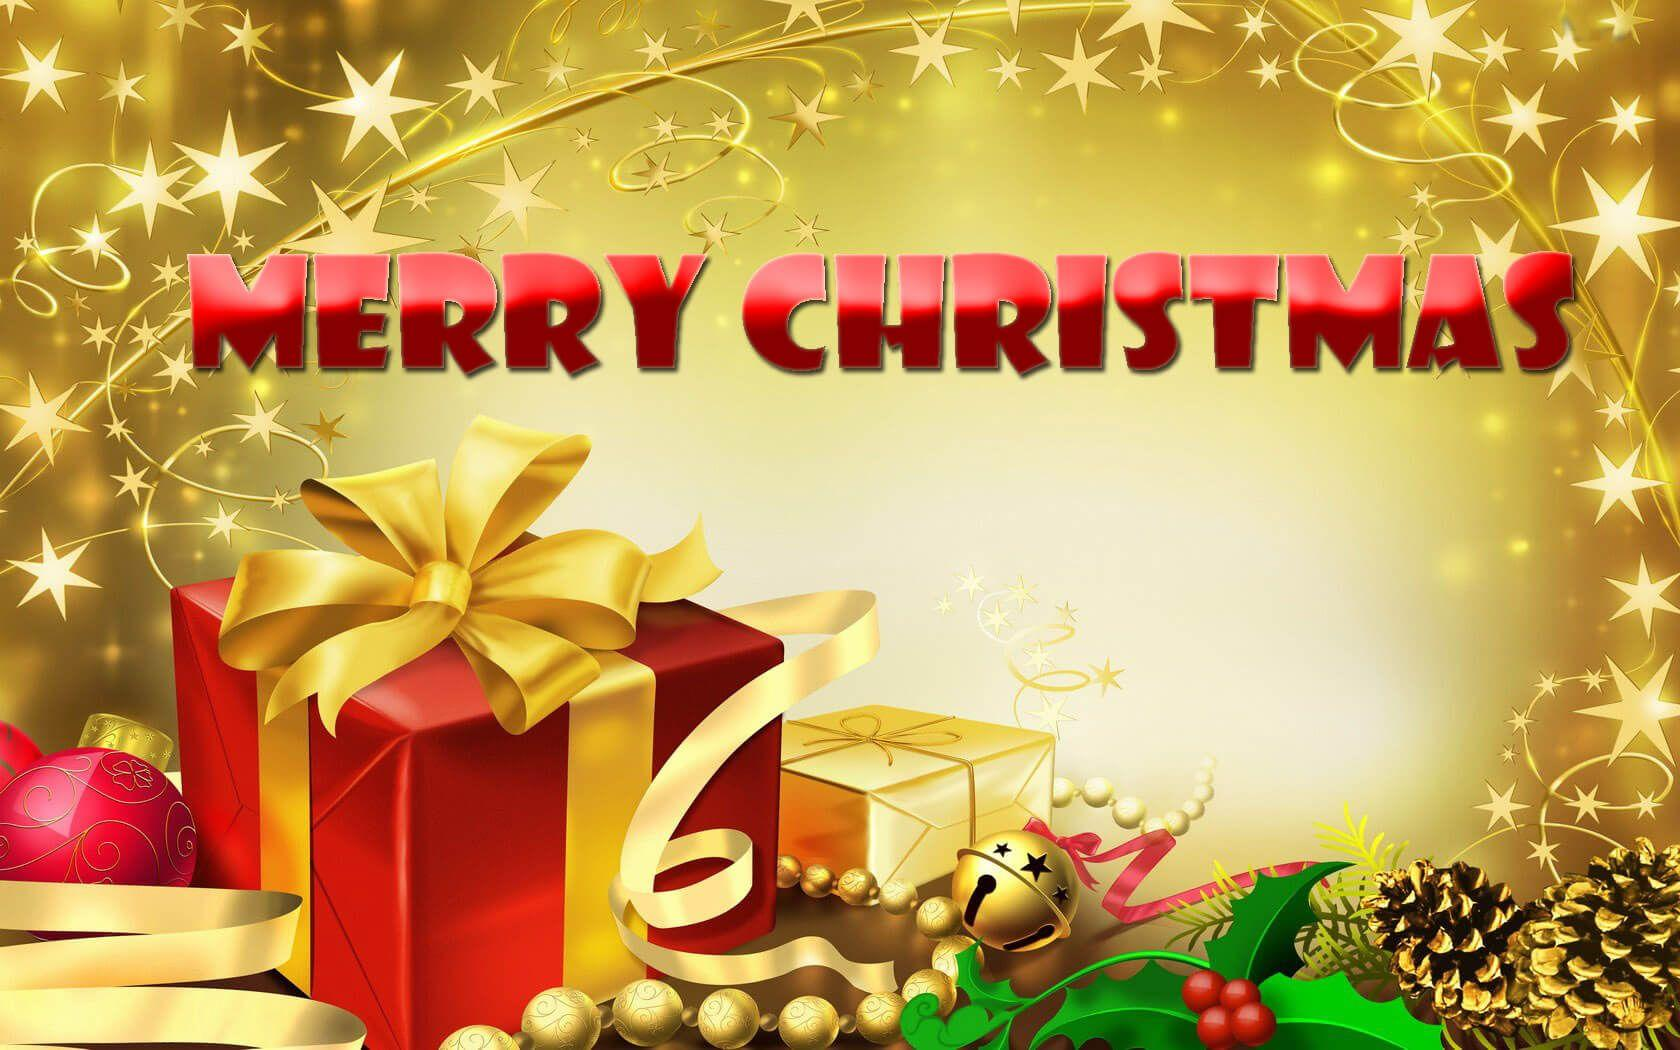 Best 70 Happy Merry Christmas Wallpapers HD 2019